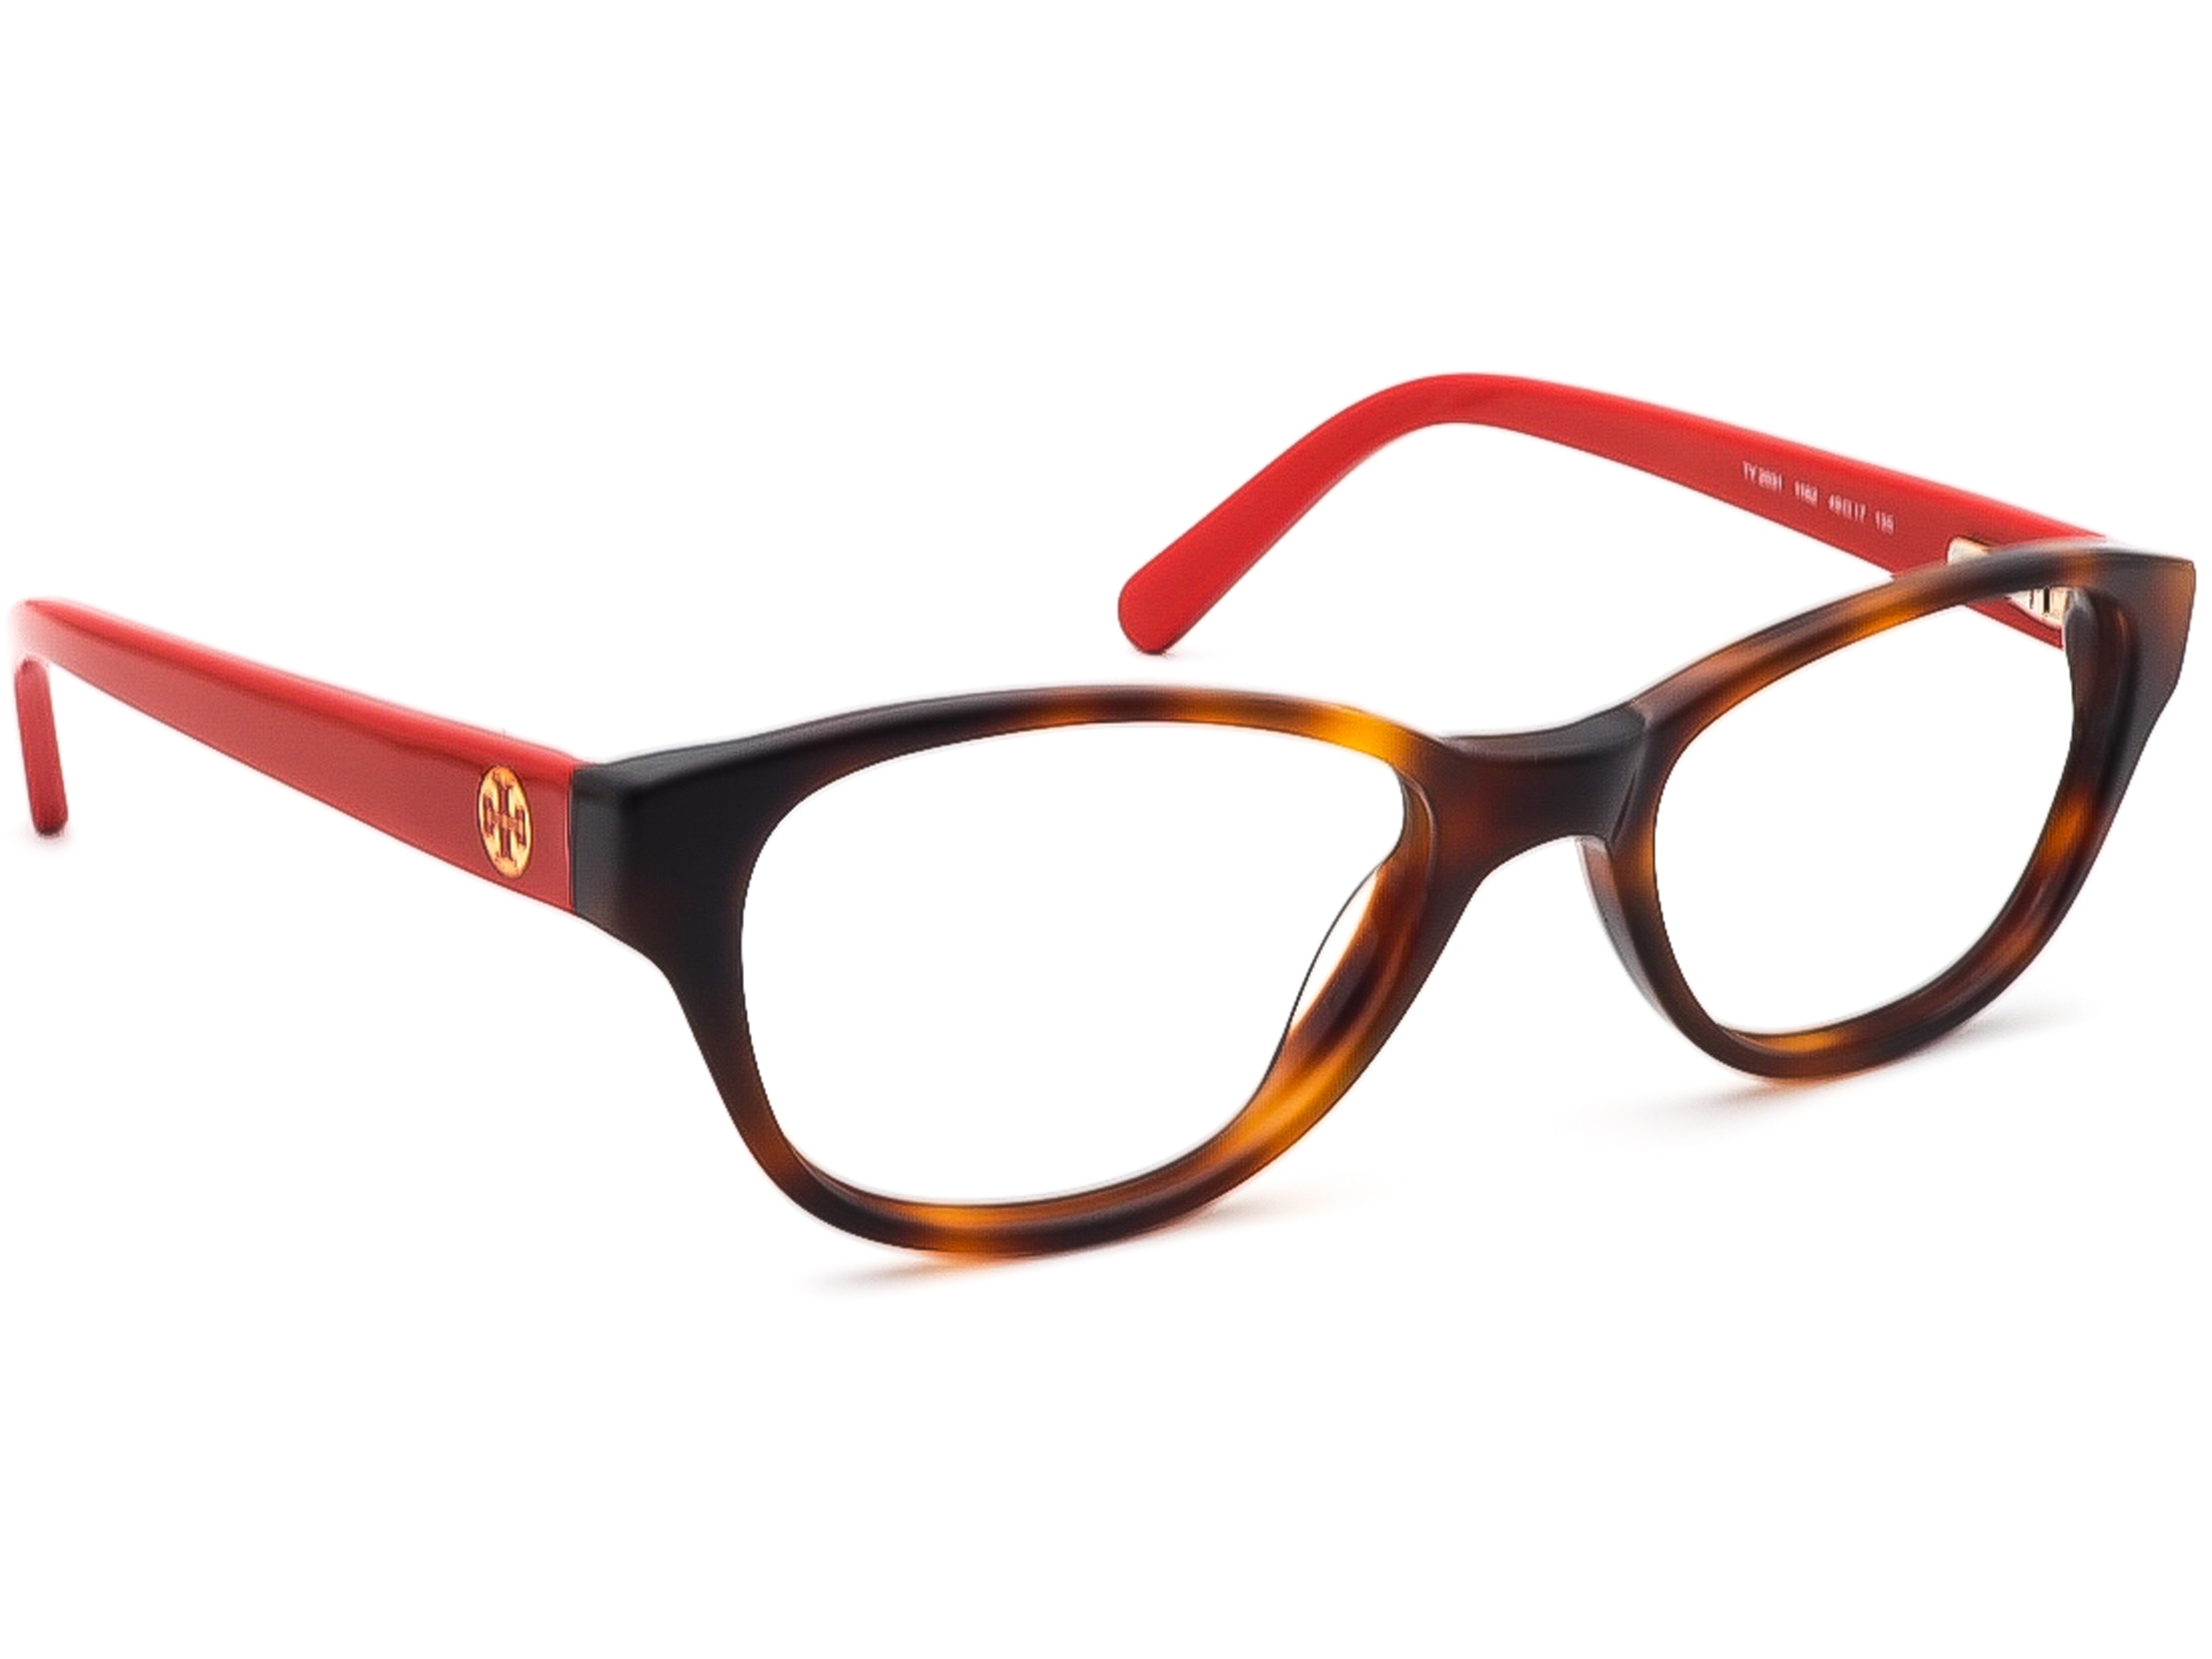 Tory Burch TY 2031 1162 Eyeglasses